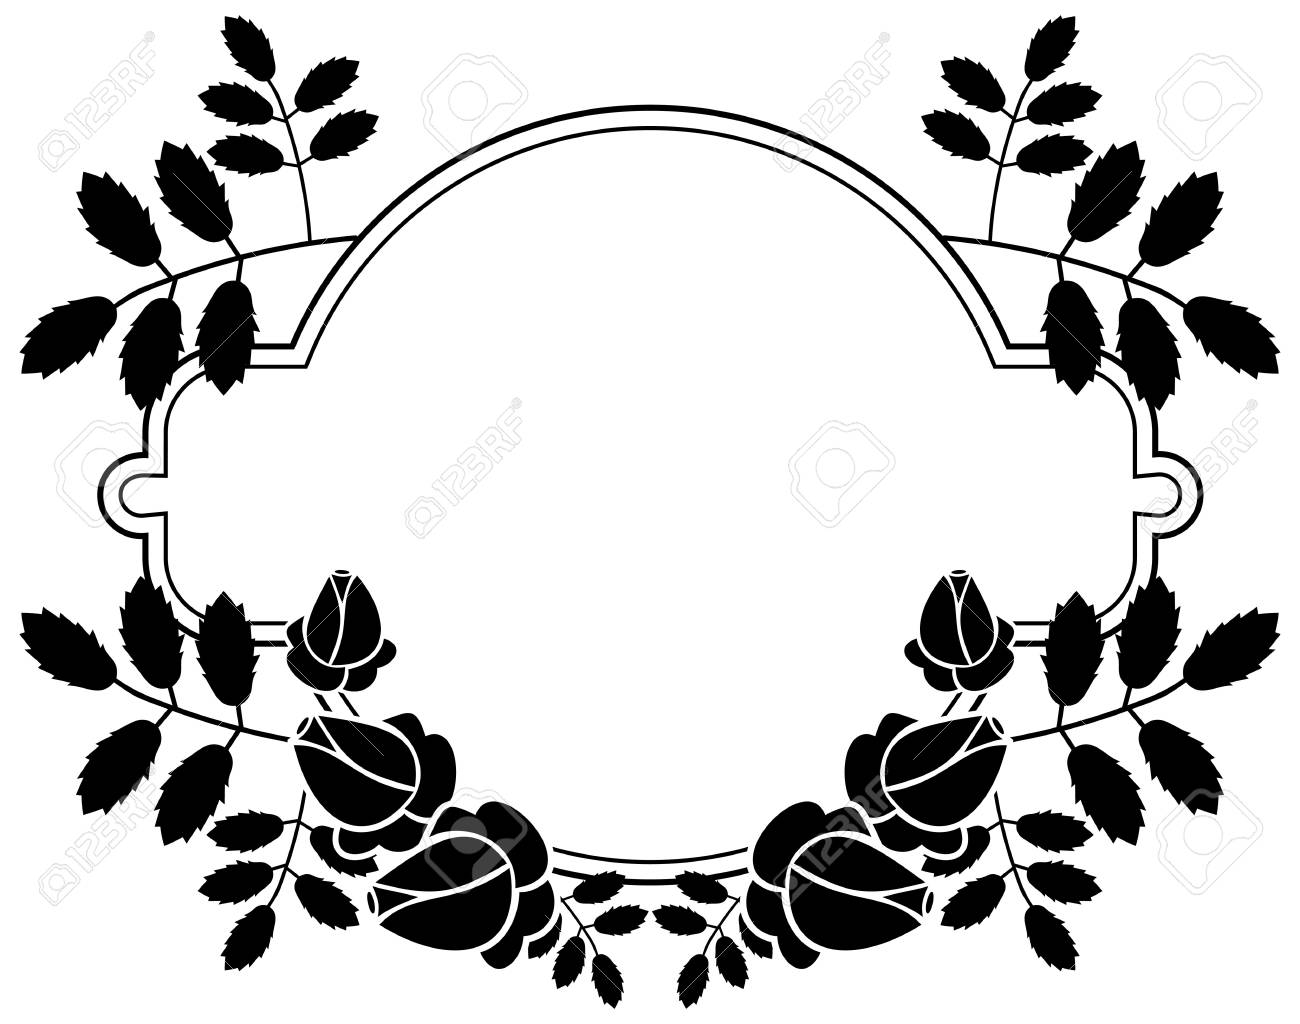 Black And White Silhouette Floral Frame Ornament For Laser